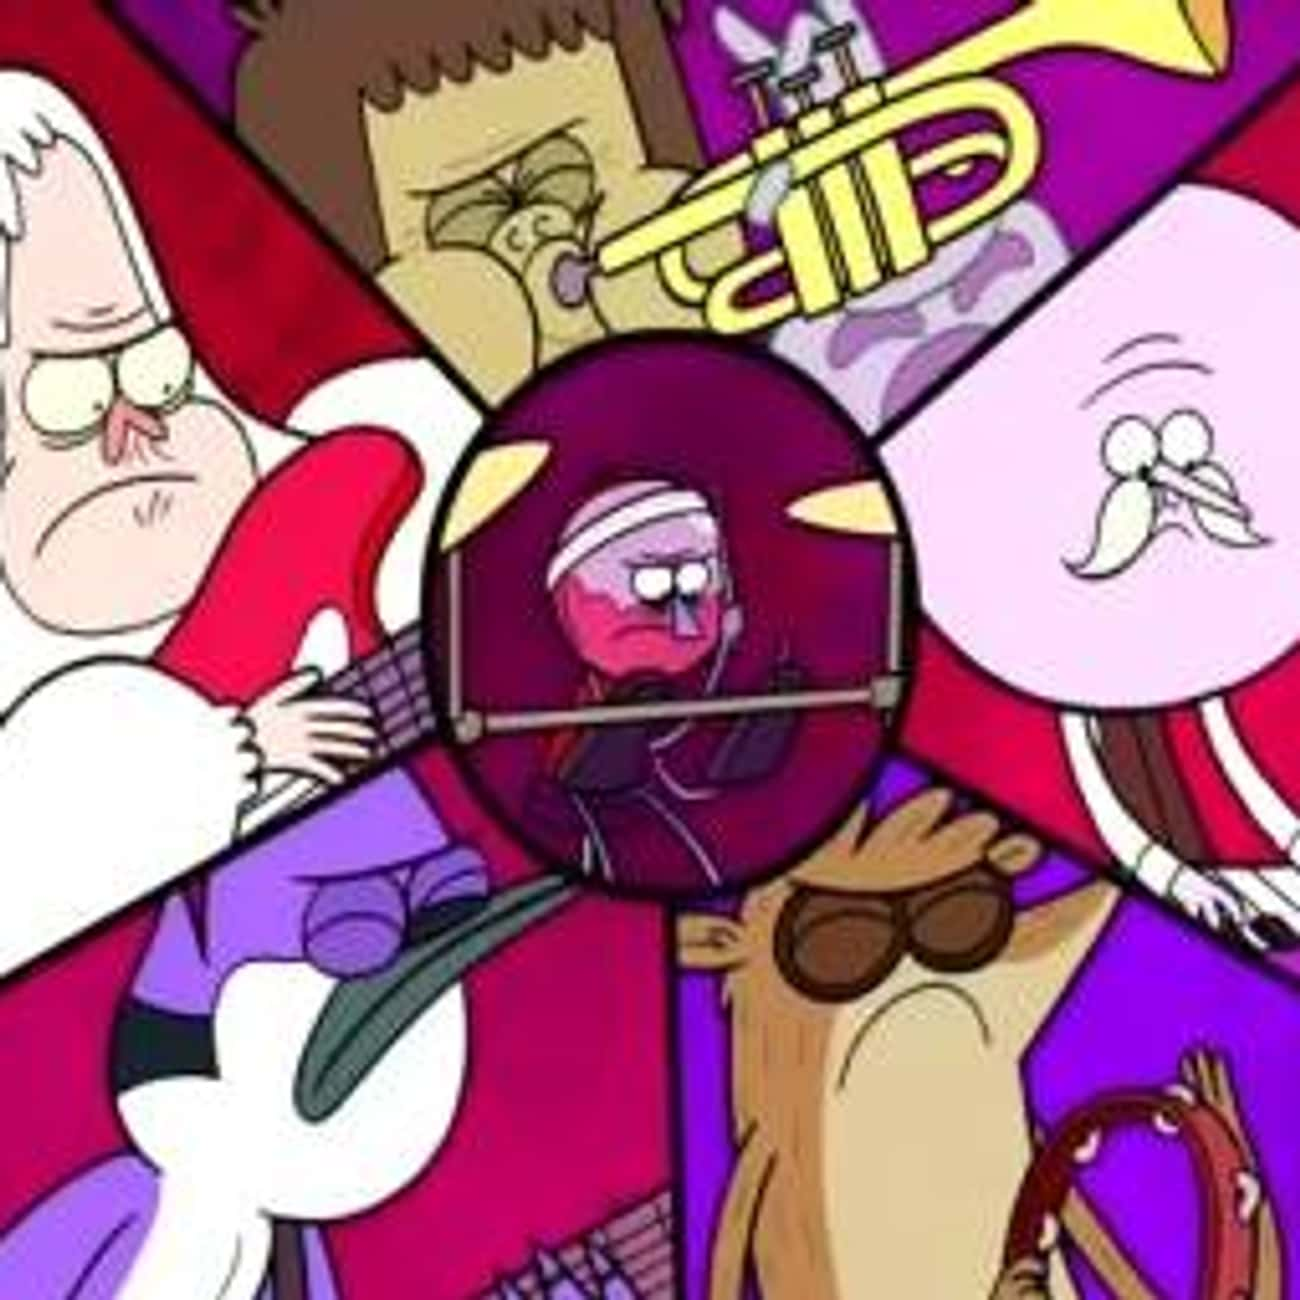 This is My Jam is listed (or ranked) 2 on the list The Best Episodes of Regular Show